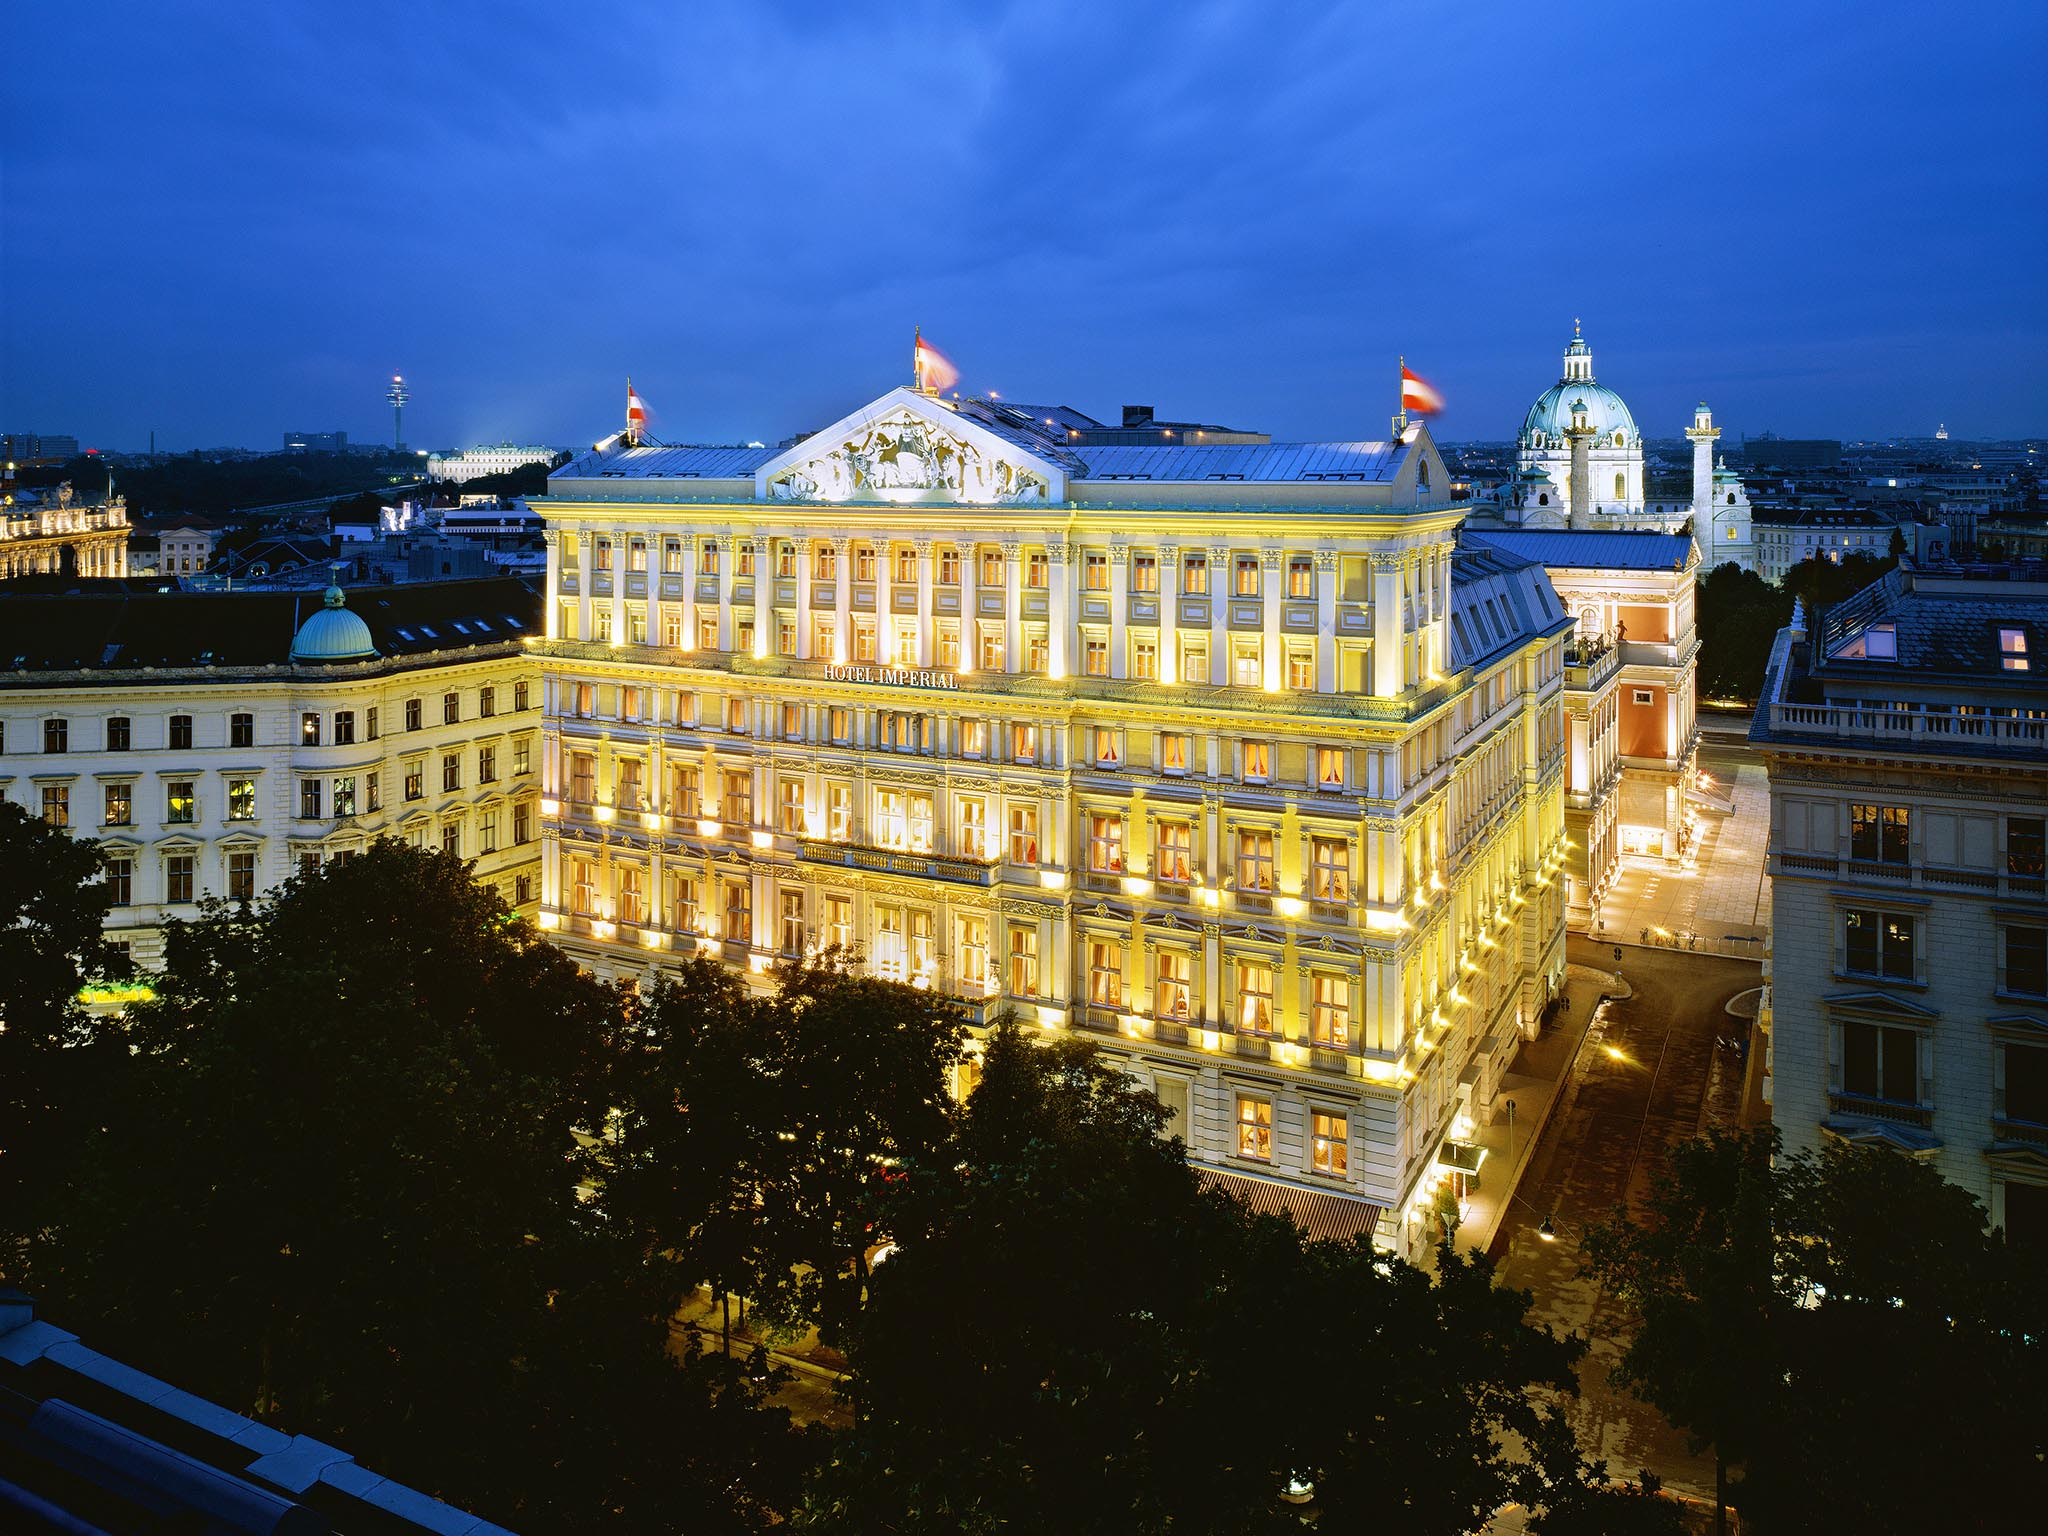 Exterior View of the Hotel Imperial in Vienna